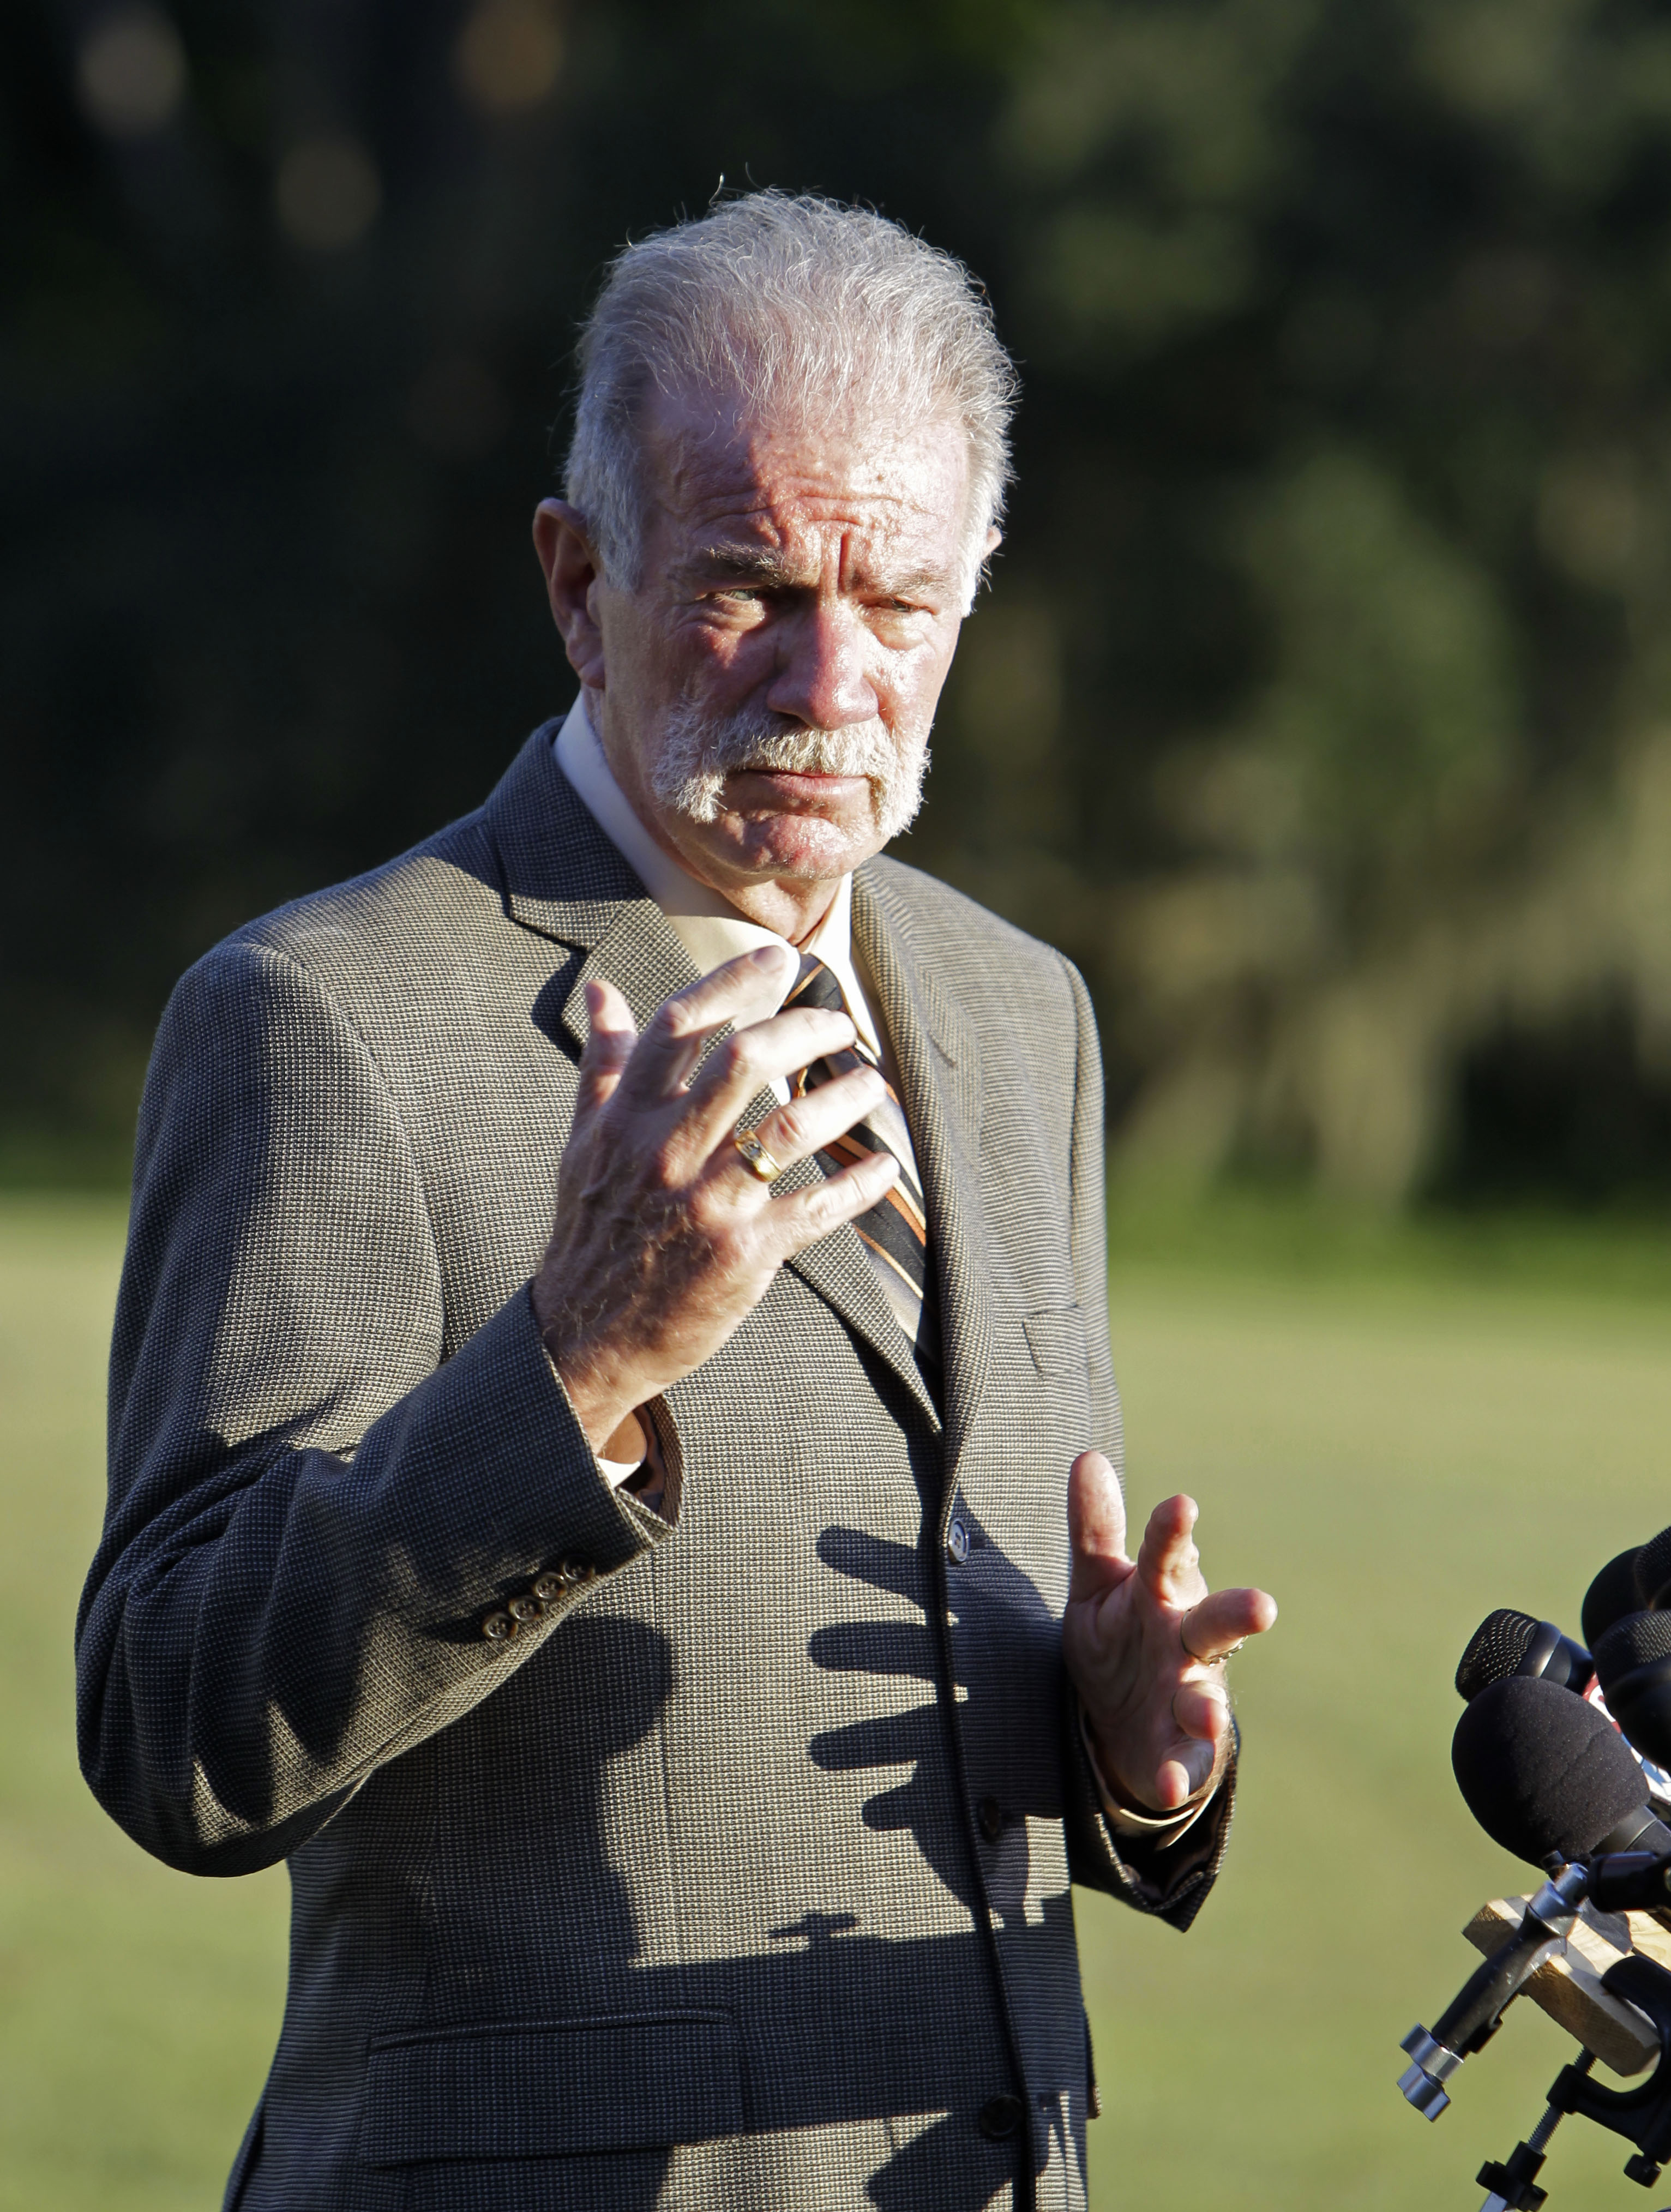 Pastor Terry Jones of the Dove World Outreach Center makes comments to reporters prior to a service at his church in Gainesville, Florida on Wednesday...